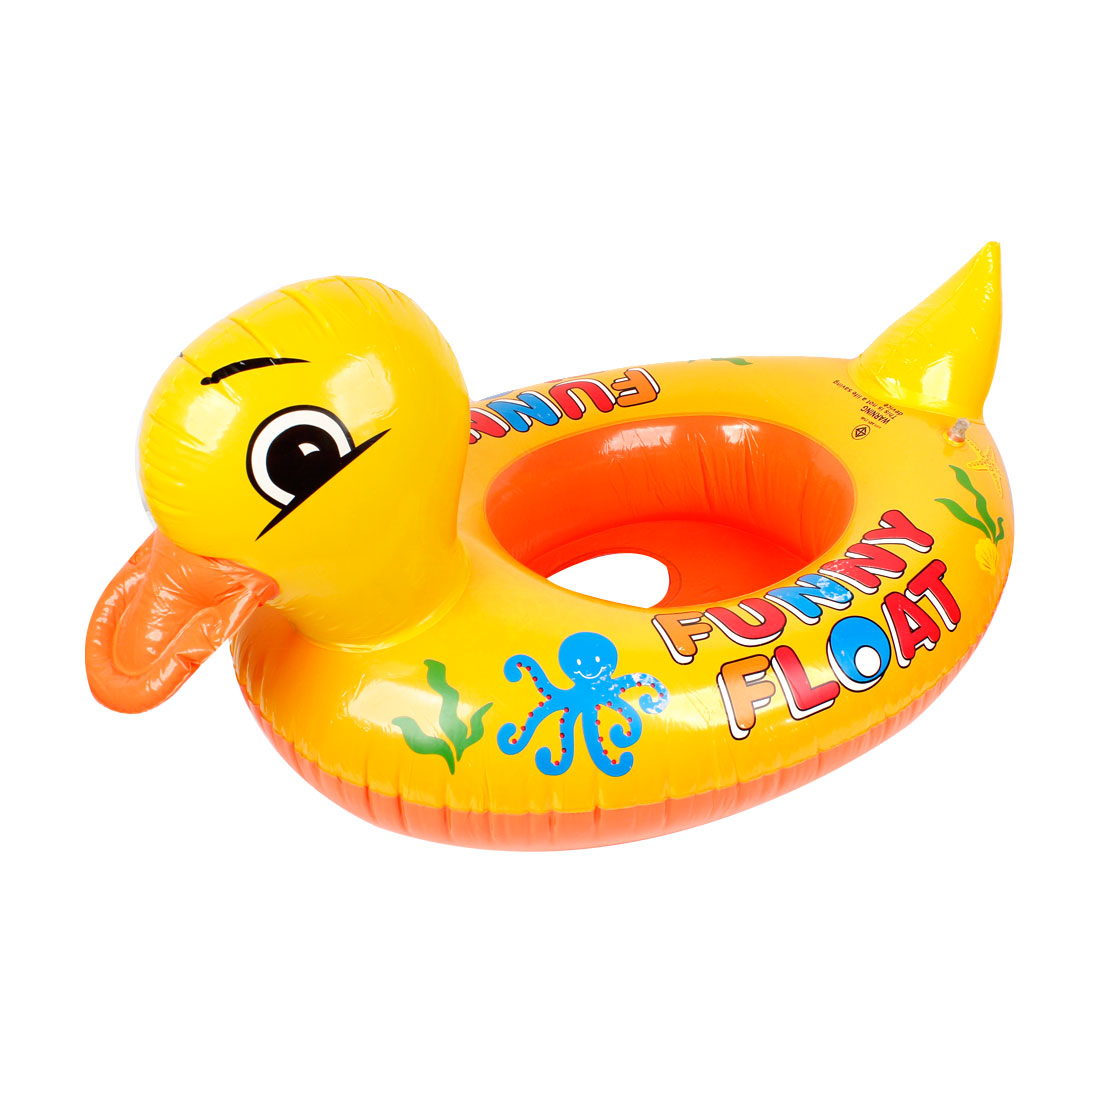 "Duck Shape 24.8"" Outside Diameter Inflatable Swim Ring Yellow Orange for Child"